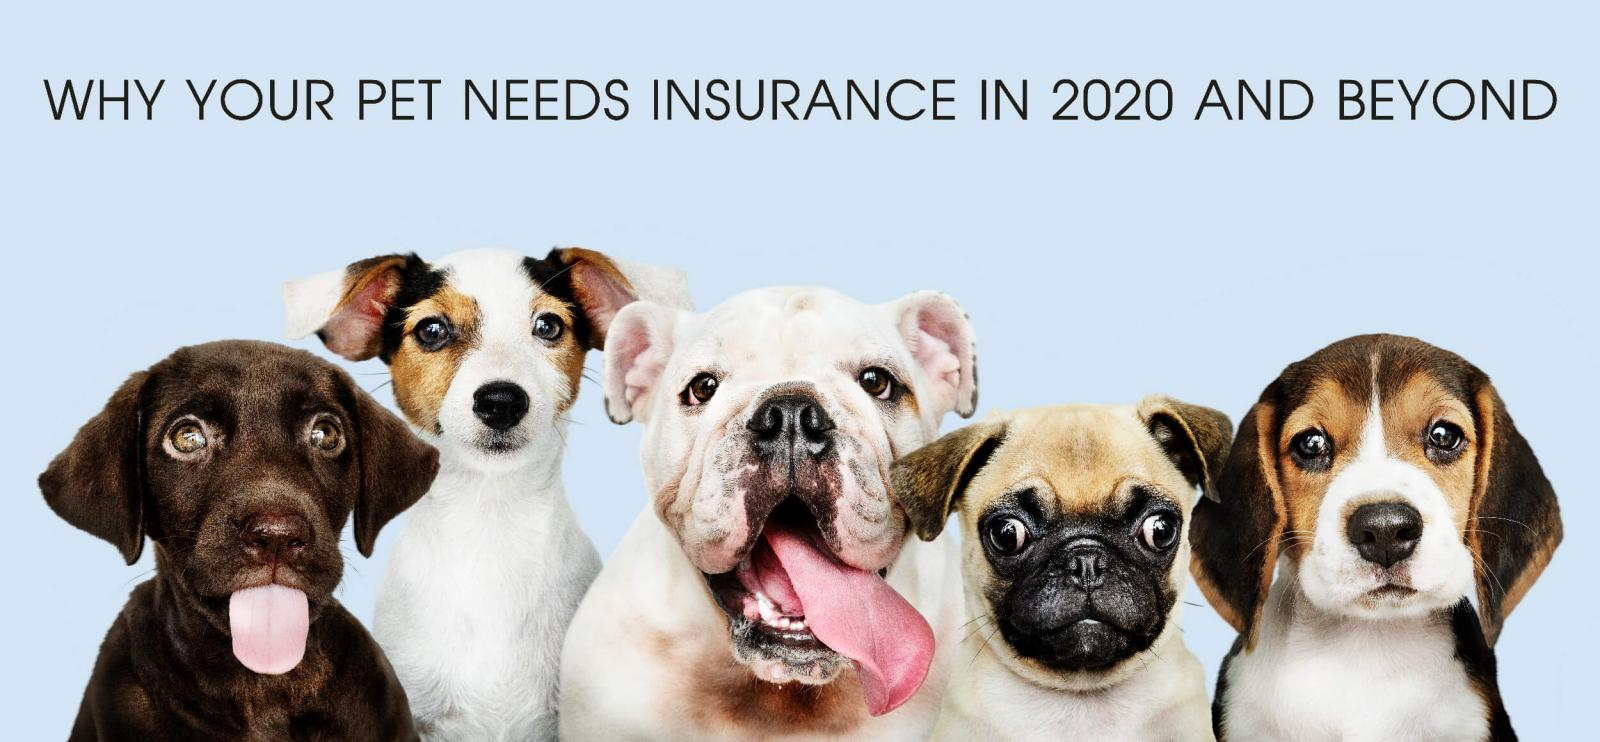 Why Your Pet Needs Insurance in 2020 and Beyond